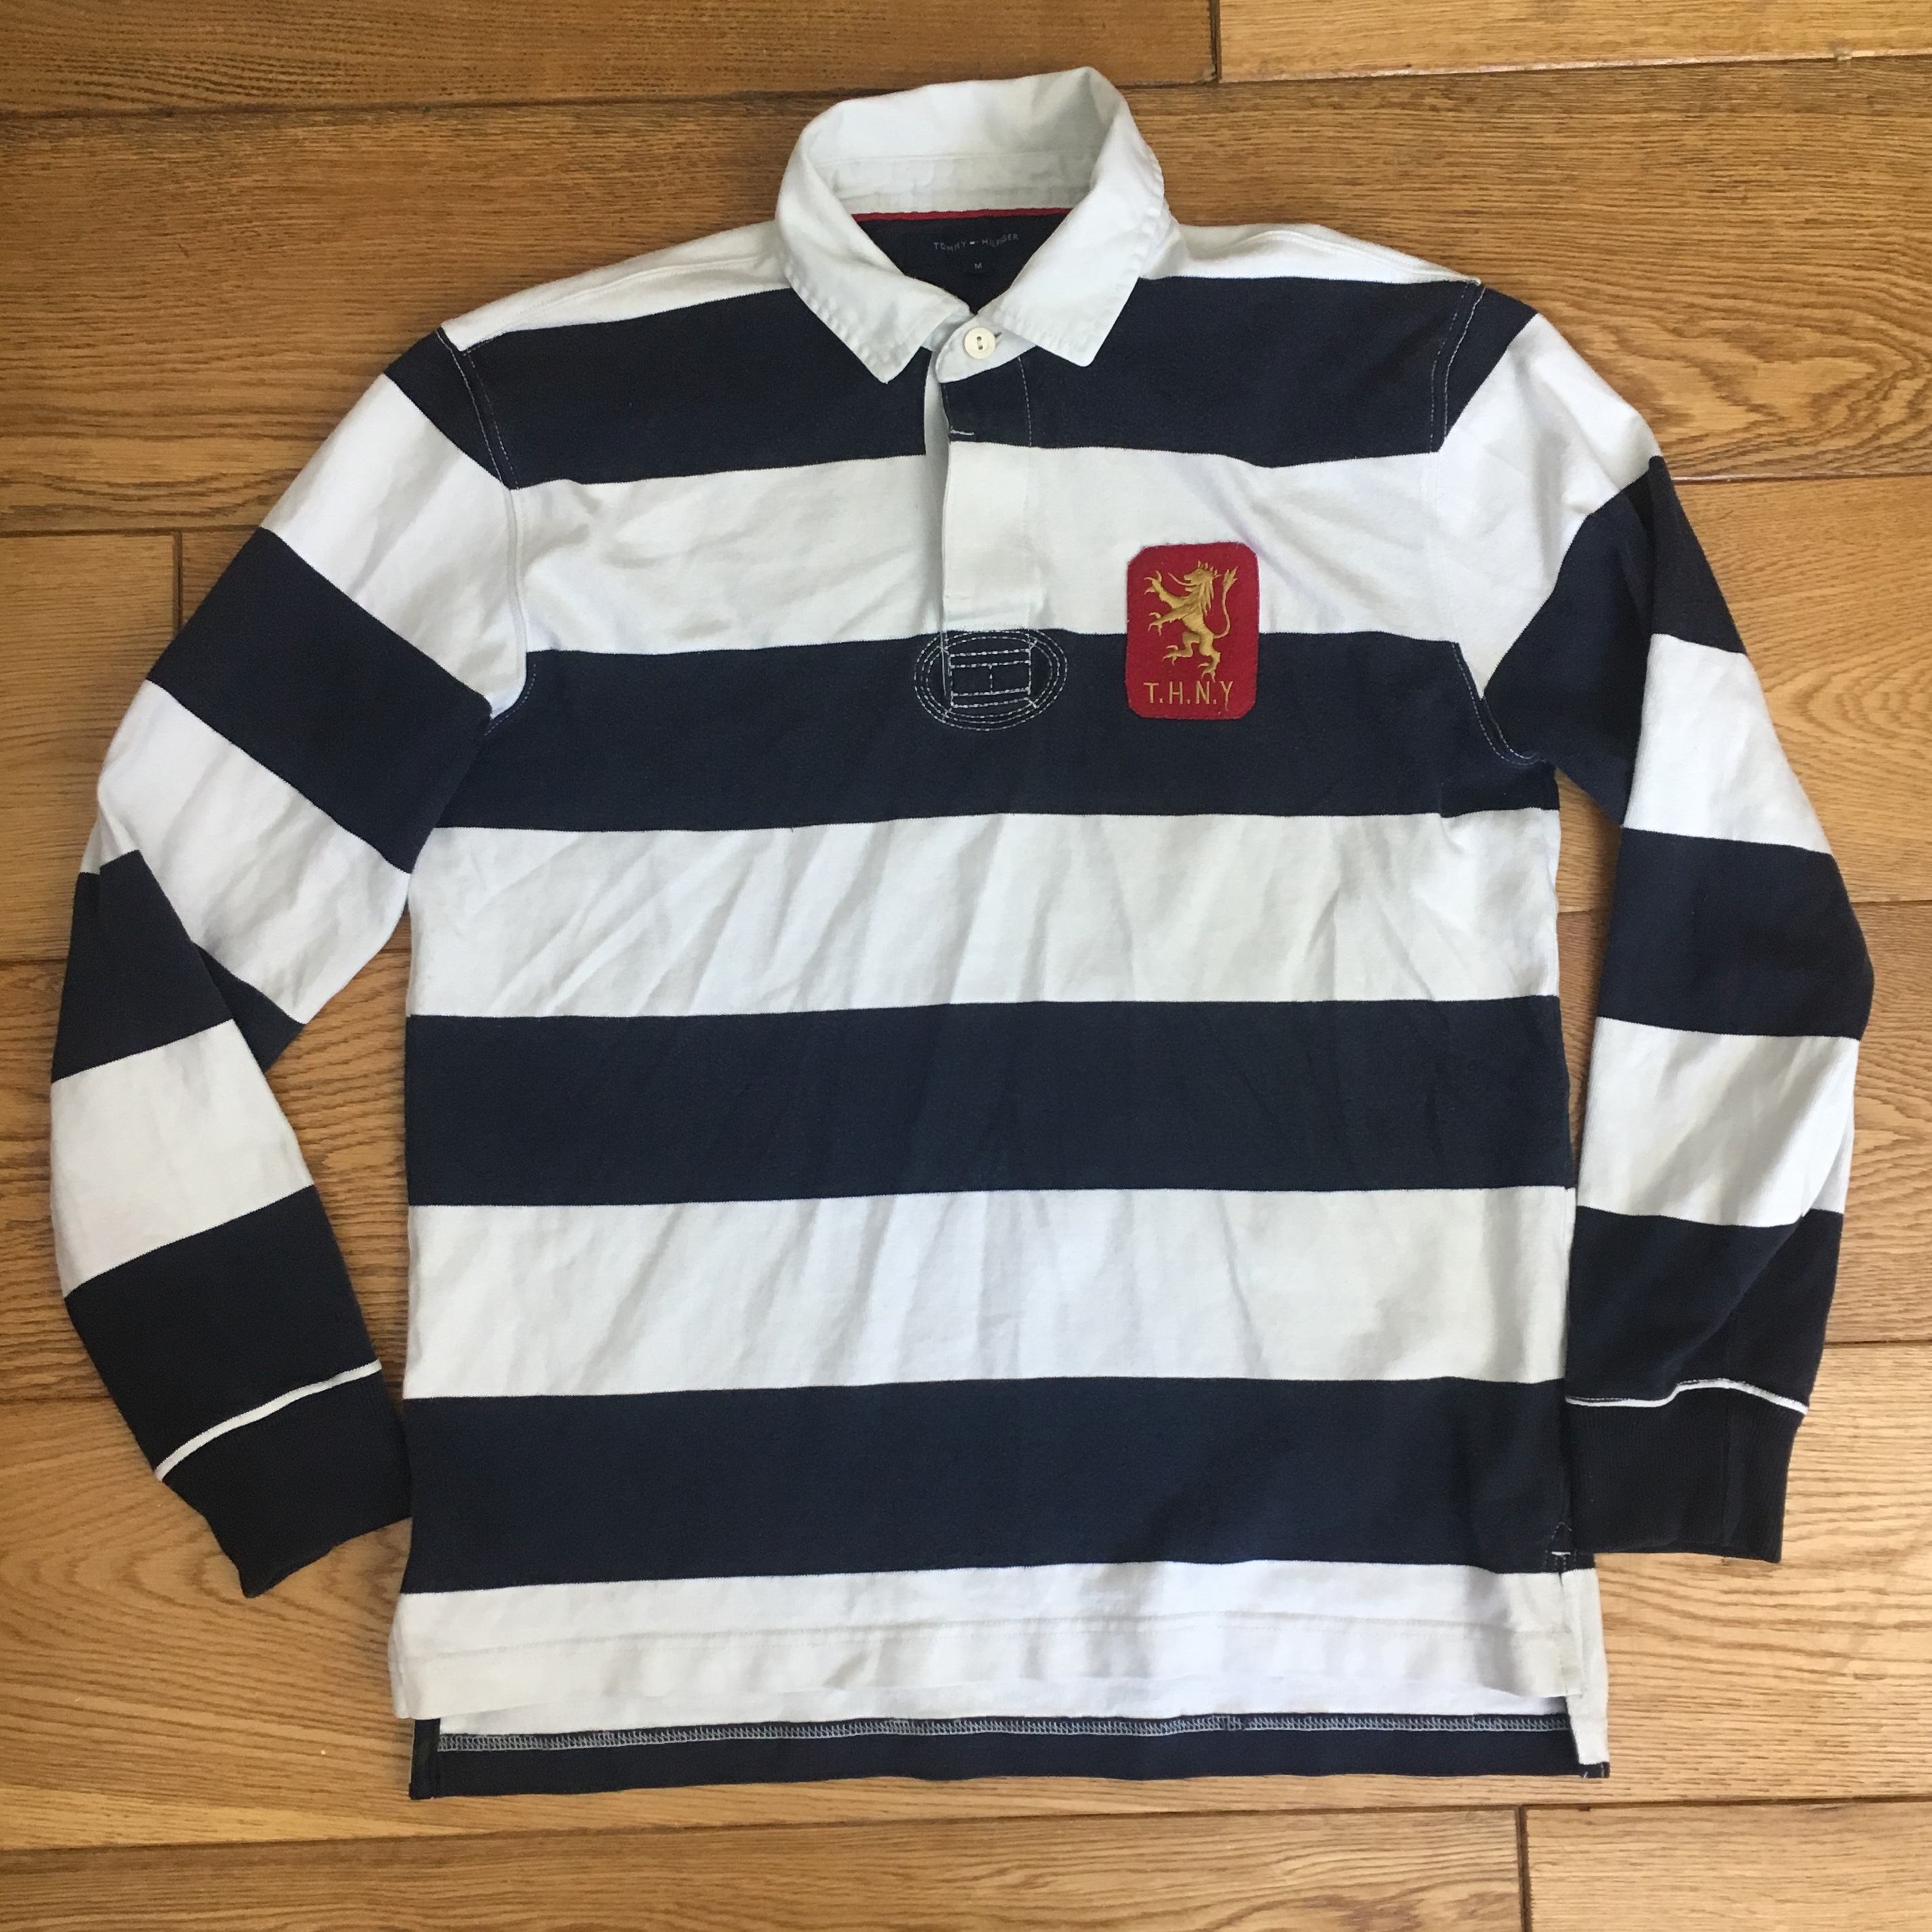 9d5567cd54576 Tommy Hilfiger Mens Blue Navy White Striped Rugby Polo Shirt - Depop